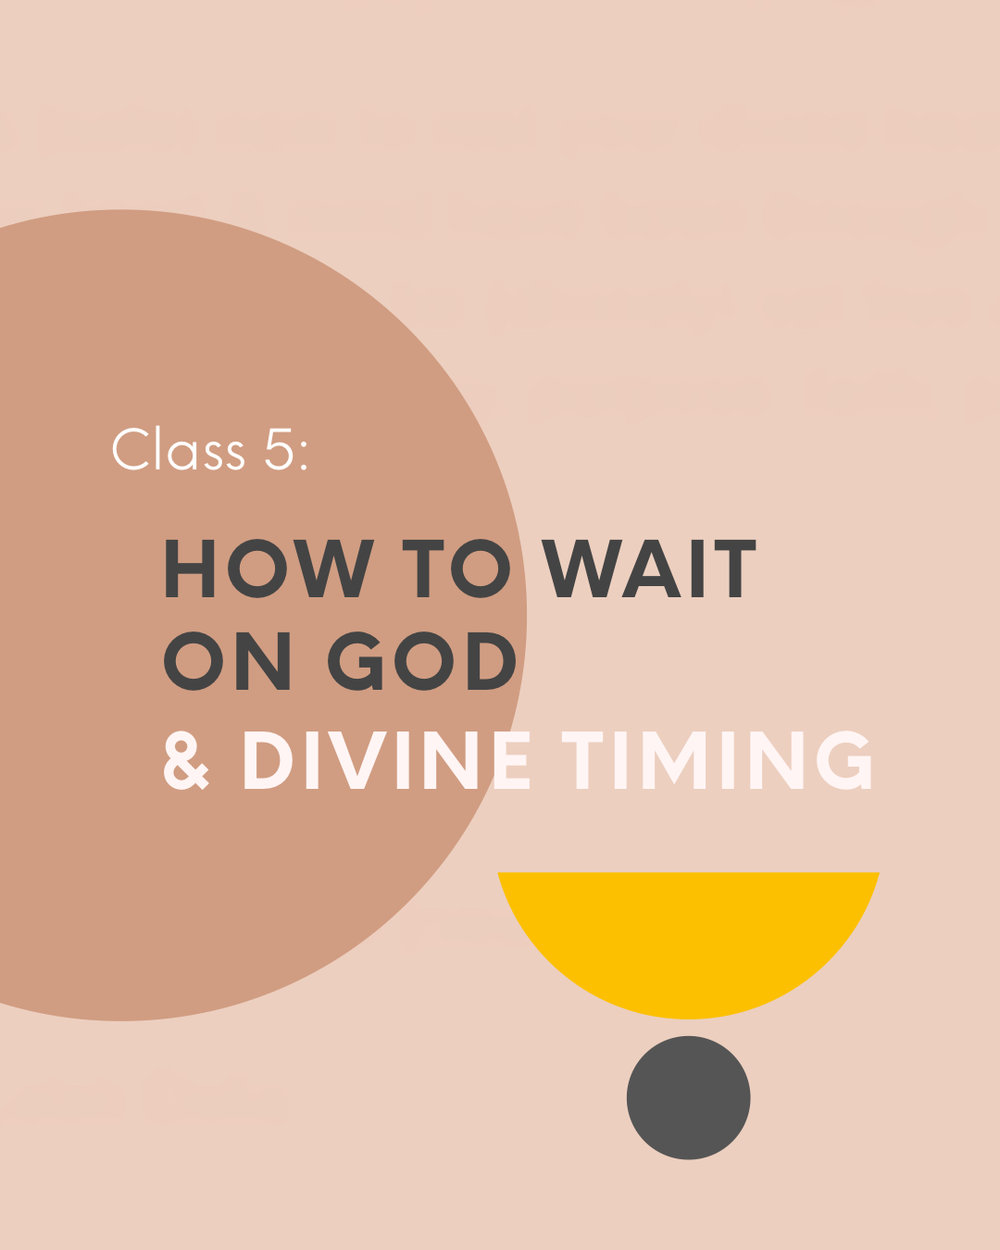 How To Wait on God & Divine Timing  - Are you trusting the timing of your life? Are you being patient with the process? Are you fully present and making the most out of this season and process you've been assigned to?Learn the empowering art of high-vibrational waiting and trusting divine timing, this Saturday!Most of our mistakes, bitterness, discontent, and unhappiness we experience in life, is due to not knowing how to wait on God, not knowing how to honor the Divine timing of our life, by moving prematurely, and/or by not optimizing the season we've been assigned to.We'll learn about divine timing, how to have patience on the journey, how-to discern when to be still, move on, release, and take action, how-to develop and grow where you've been planted, and how-to win and elevate, by optimizing this season you're in.This class is about empowering you and freeing you from unnecessary blockages, emotional suffering, discontent, and stagnation, in you're current season.